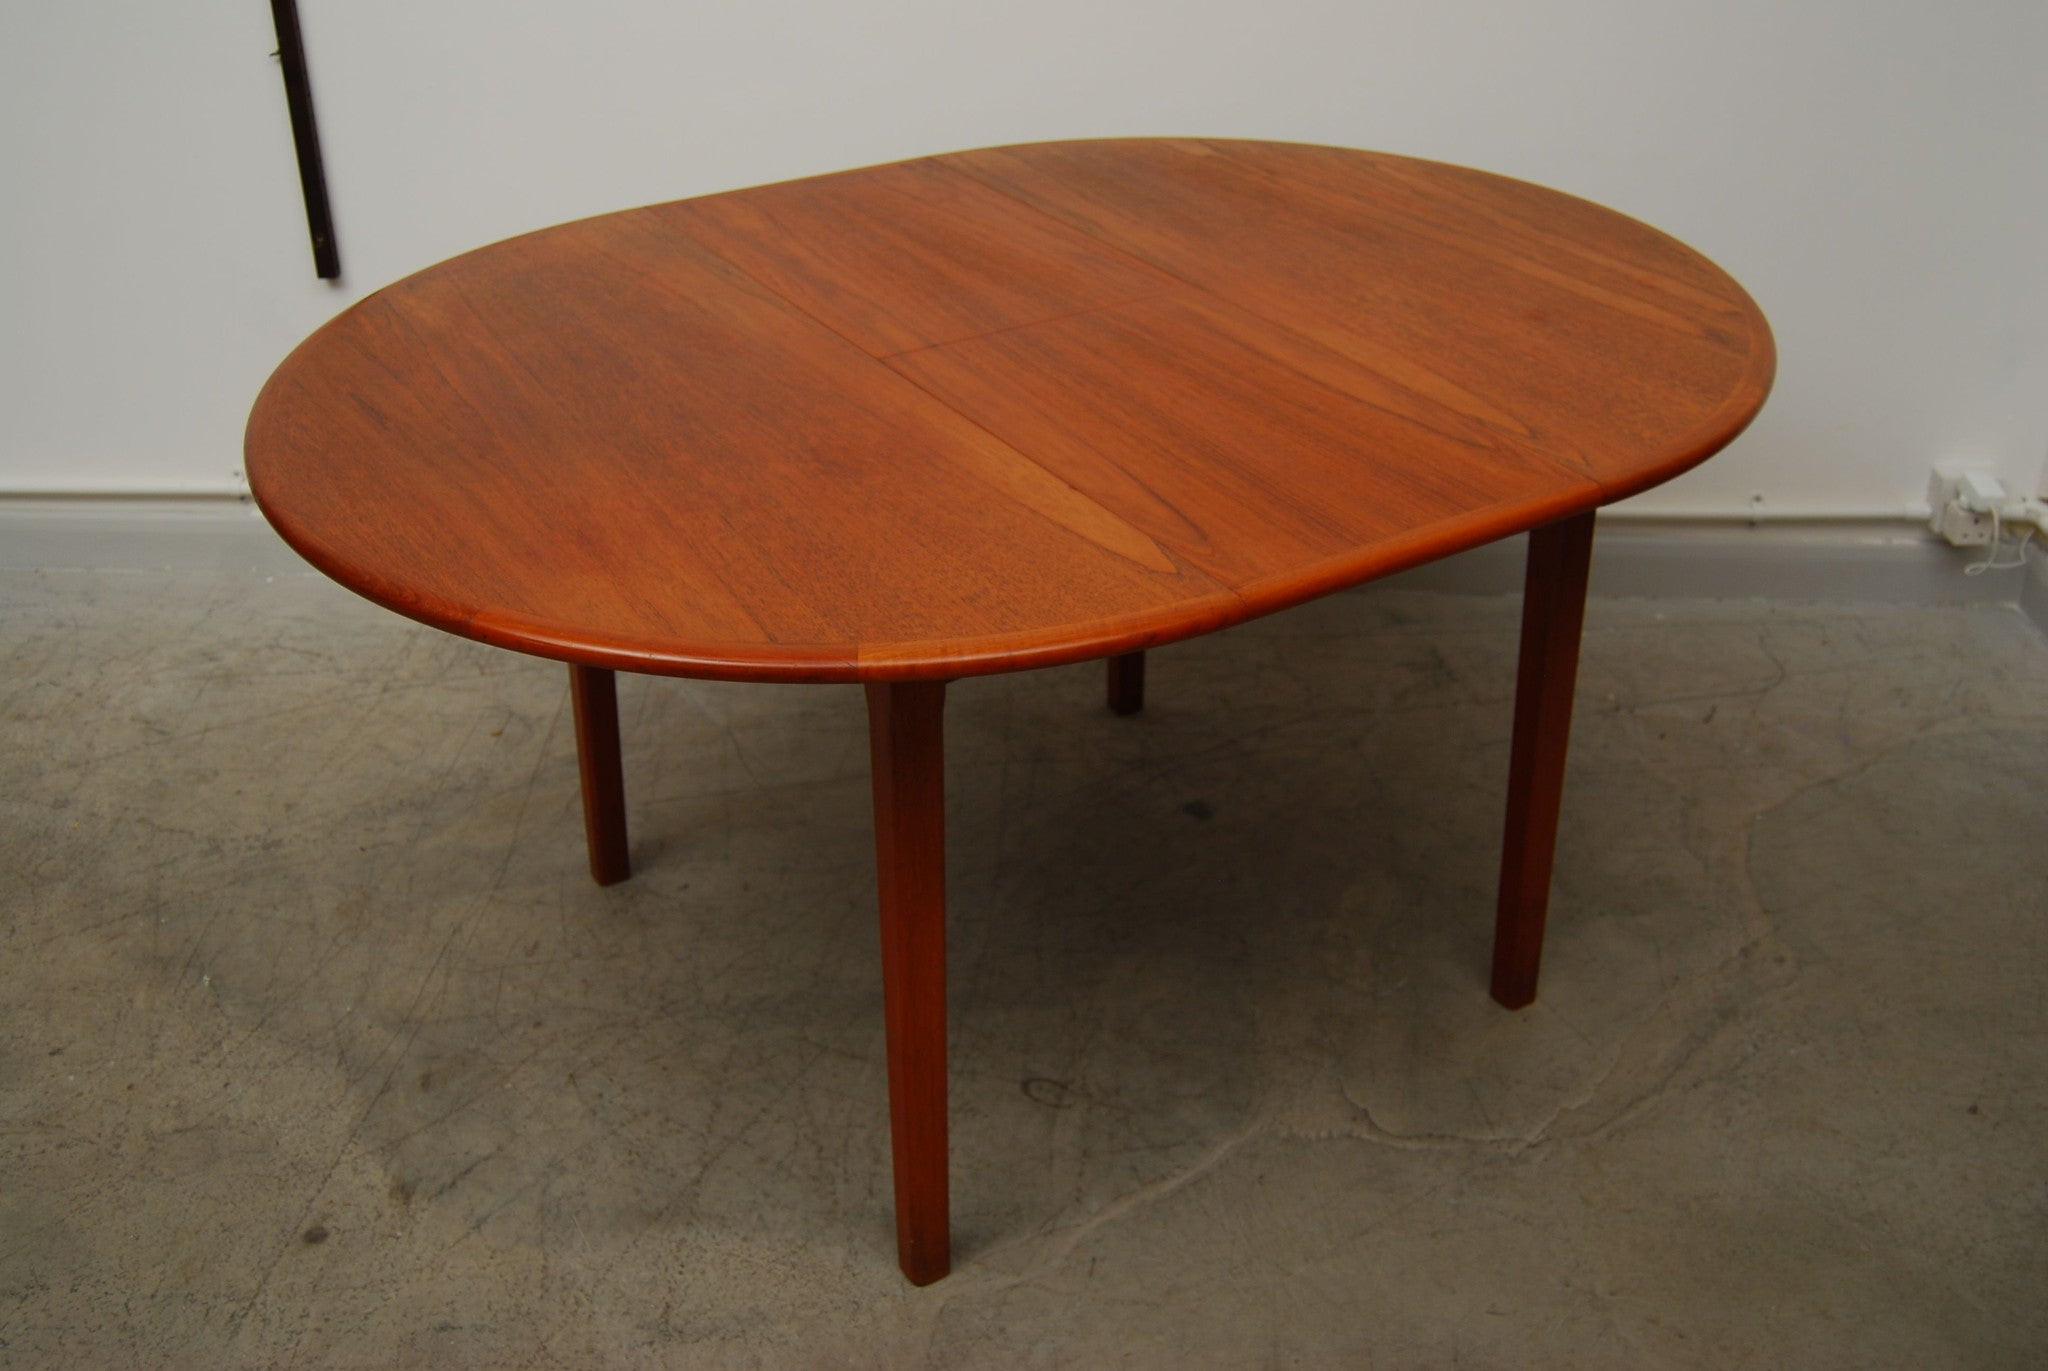 Round dining table in teak